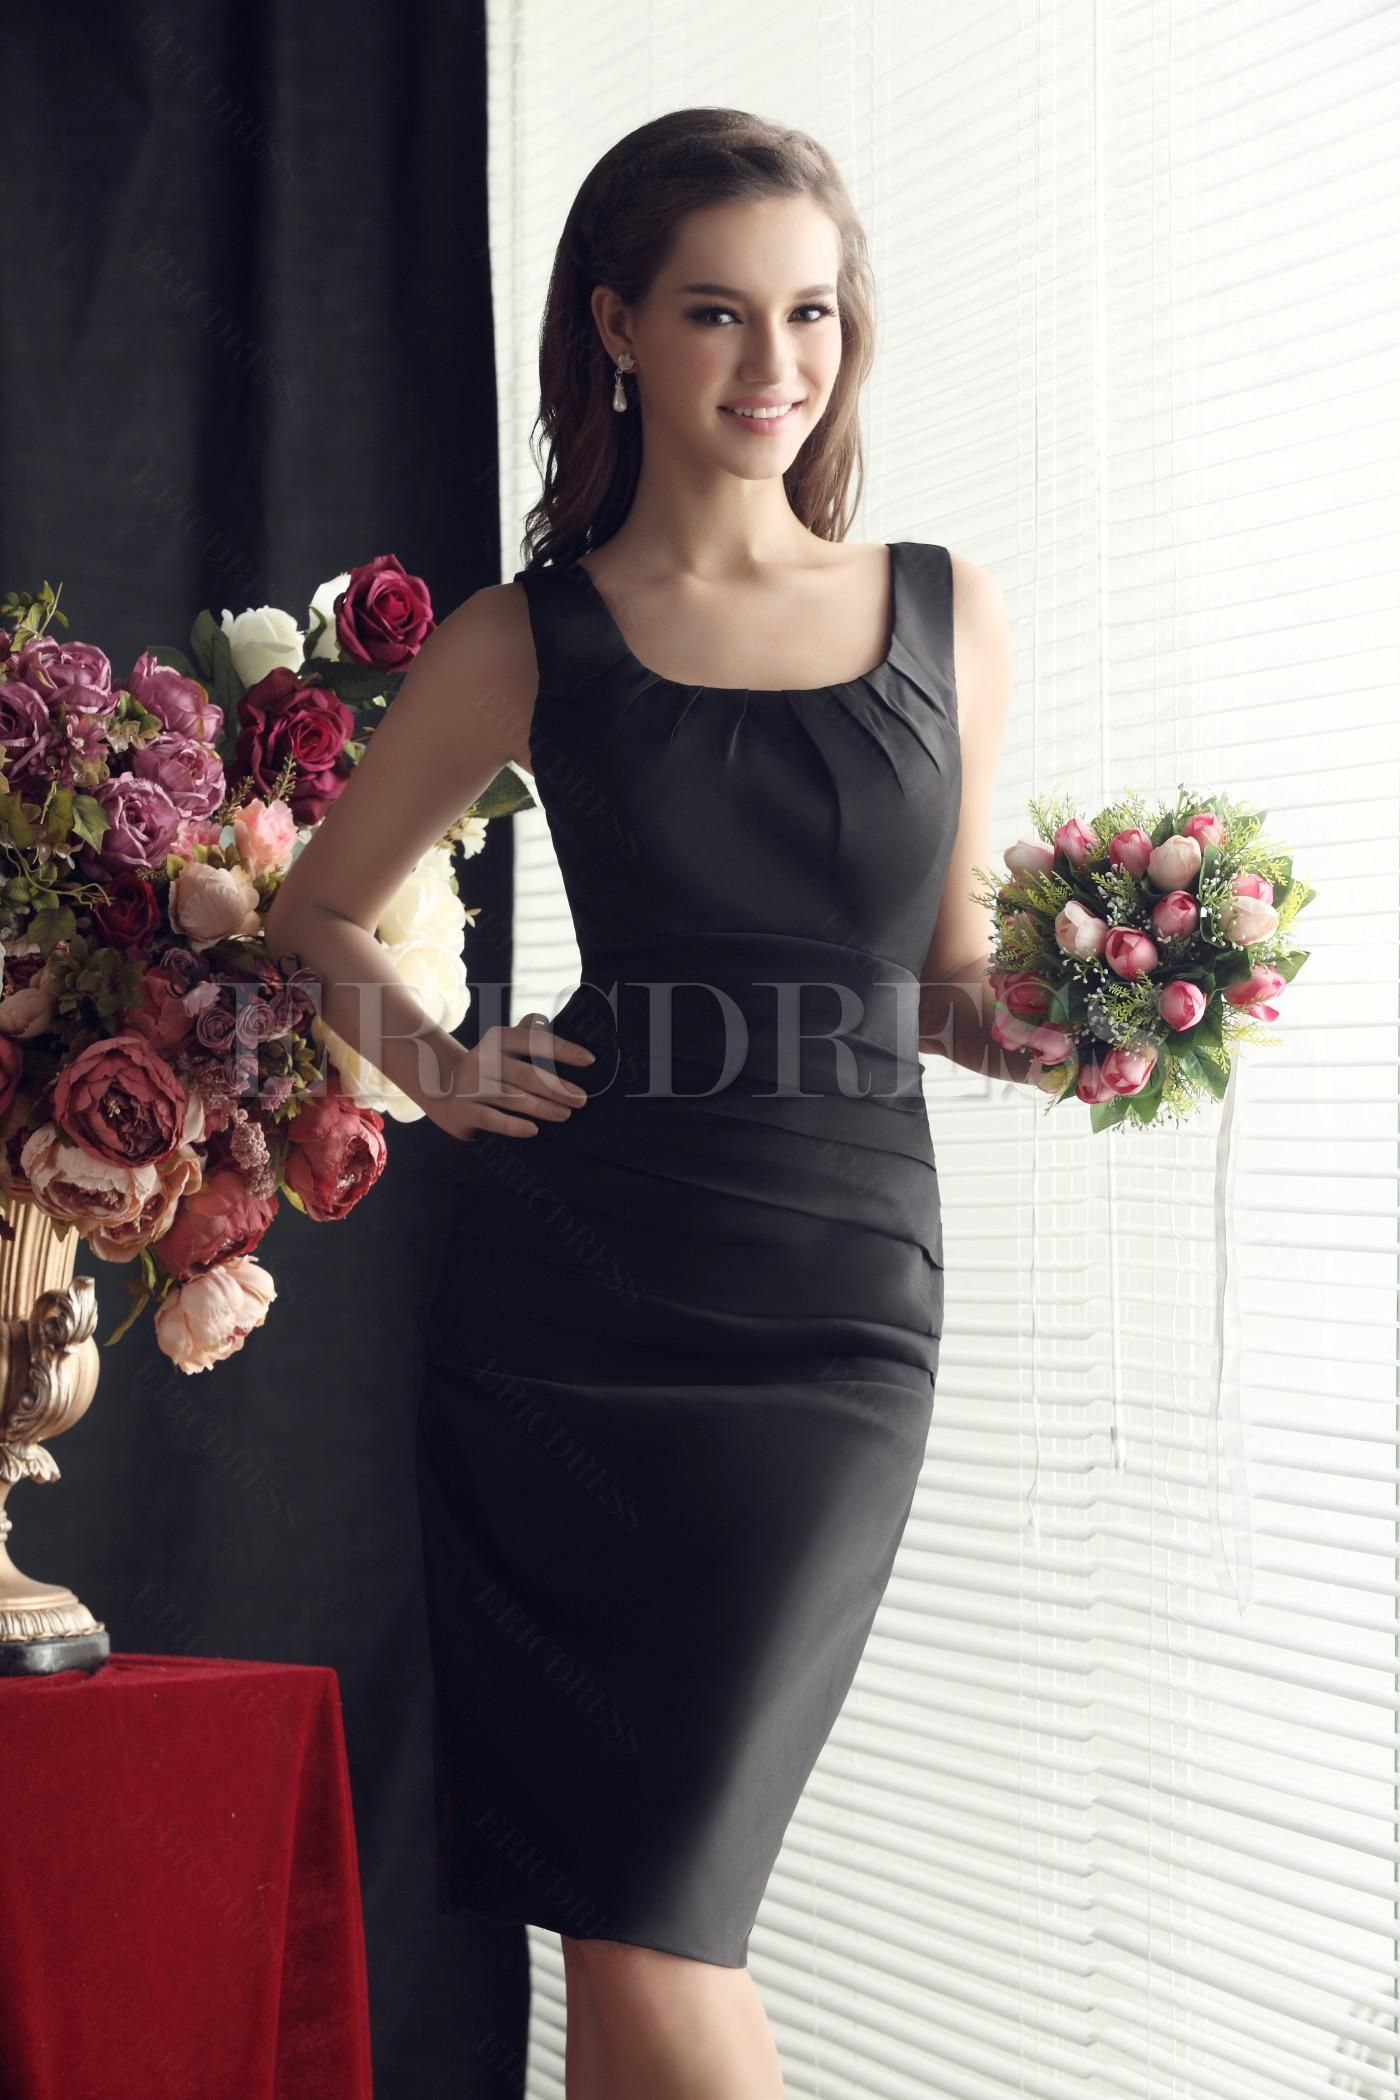 bridesmaid dress $316 - looking for something like this with a much smaller price tag!